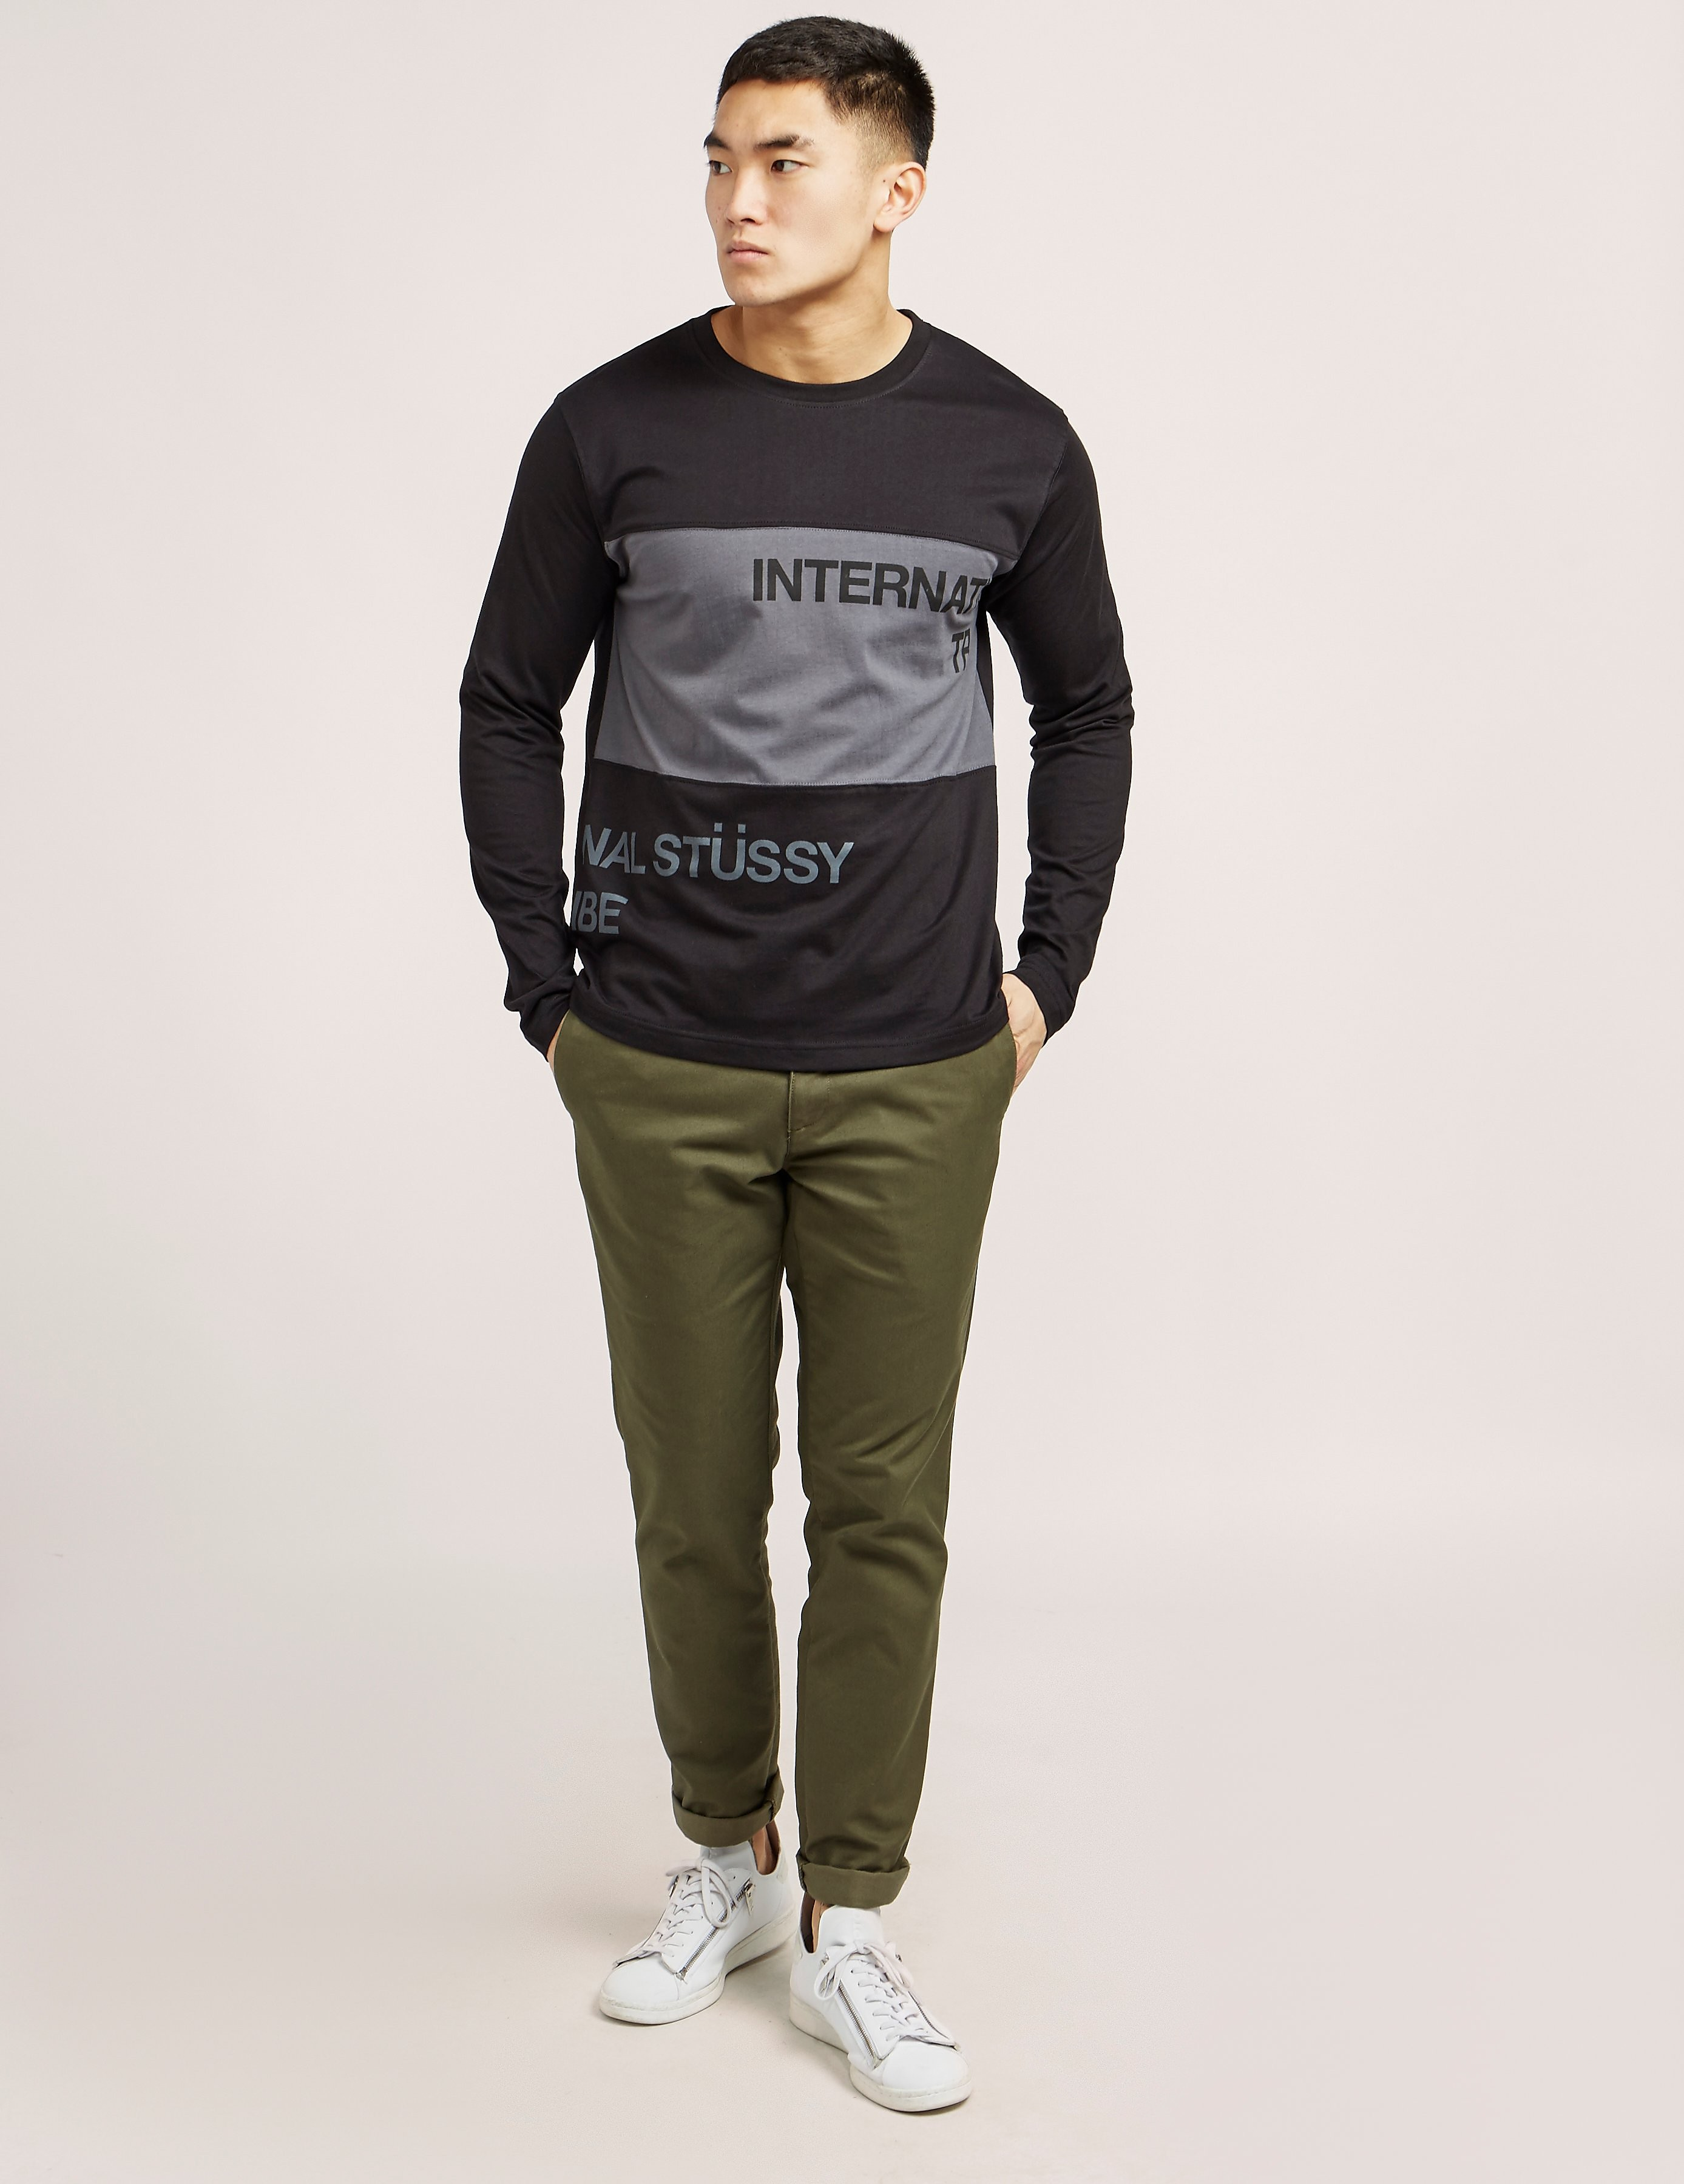 Stussy Split Panel Jersey Long Sleeve T-Shirt